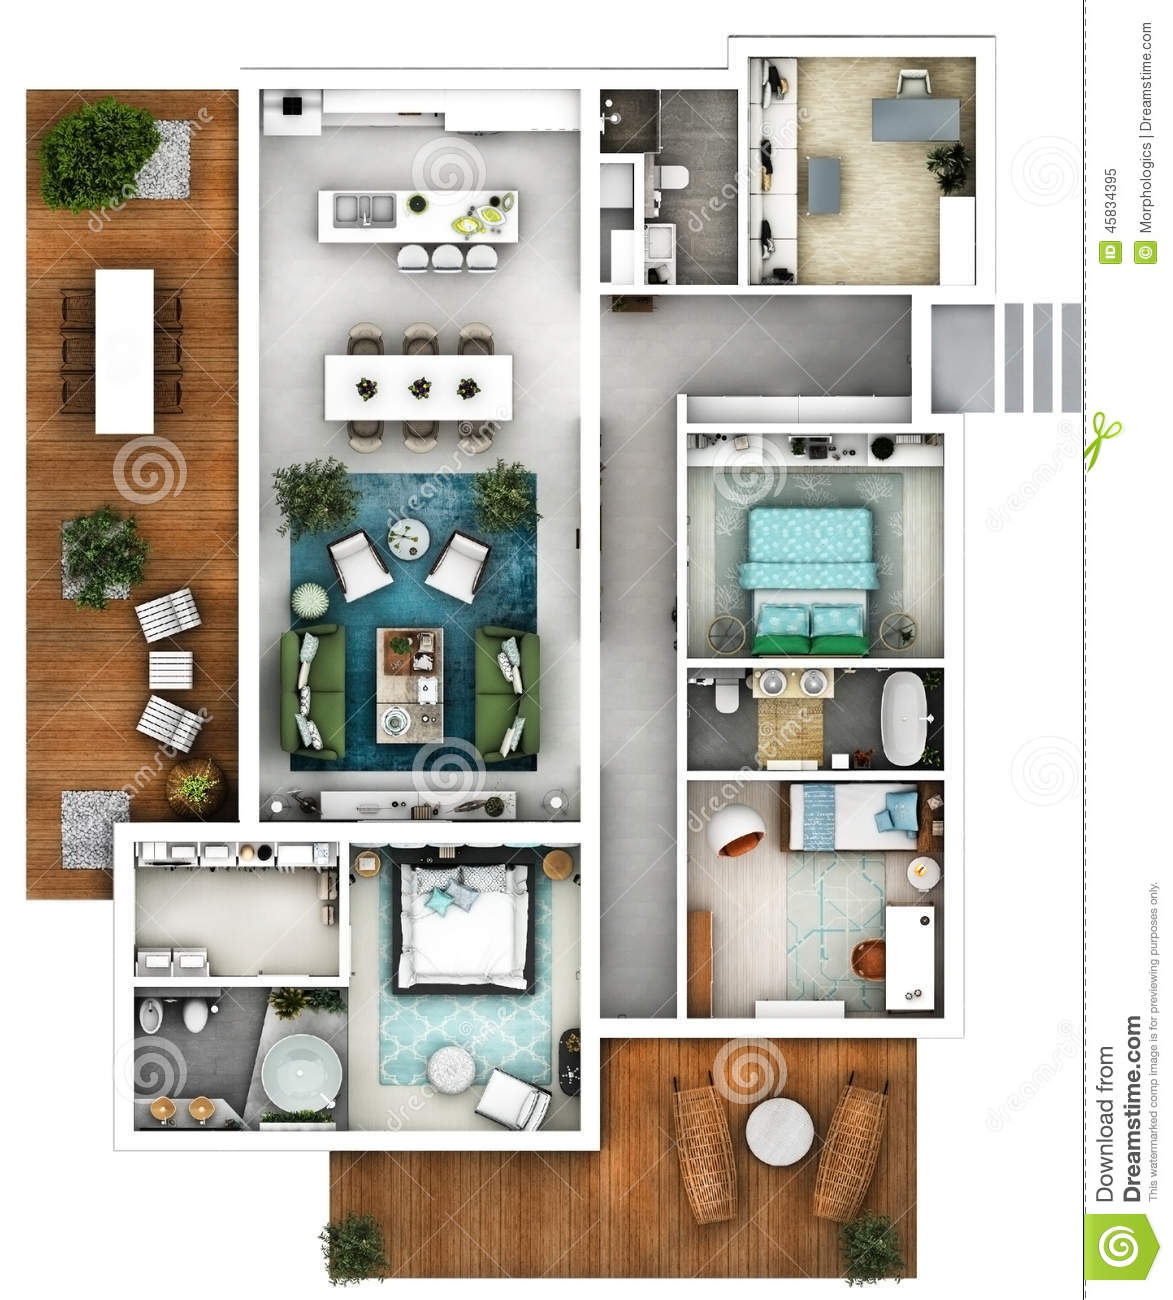 Architectural 3d floor plan top stock image image 45834395 for House plans with large kitchen and family room